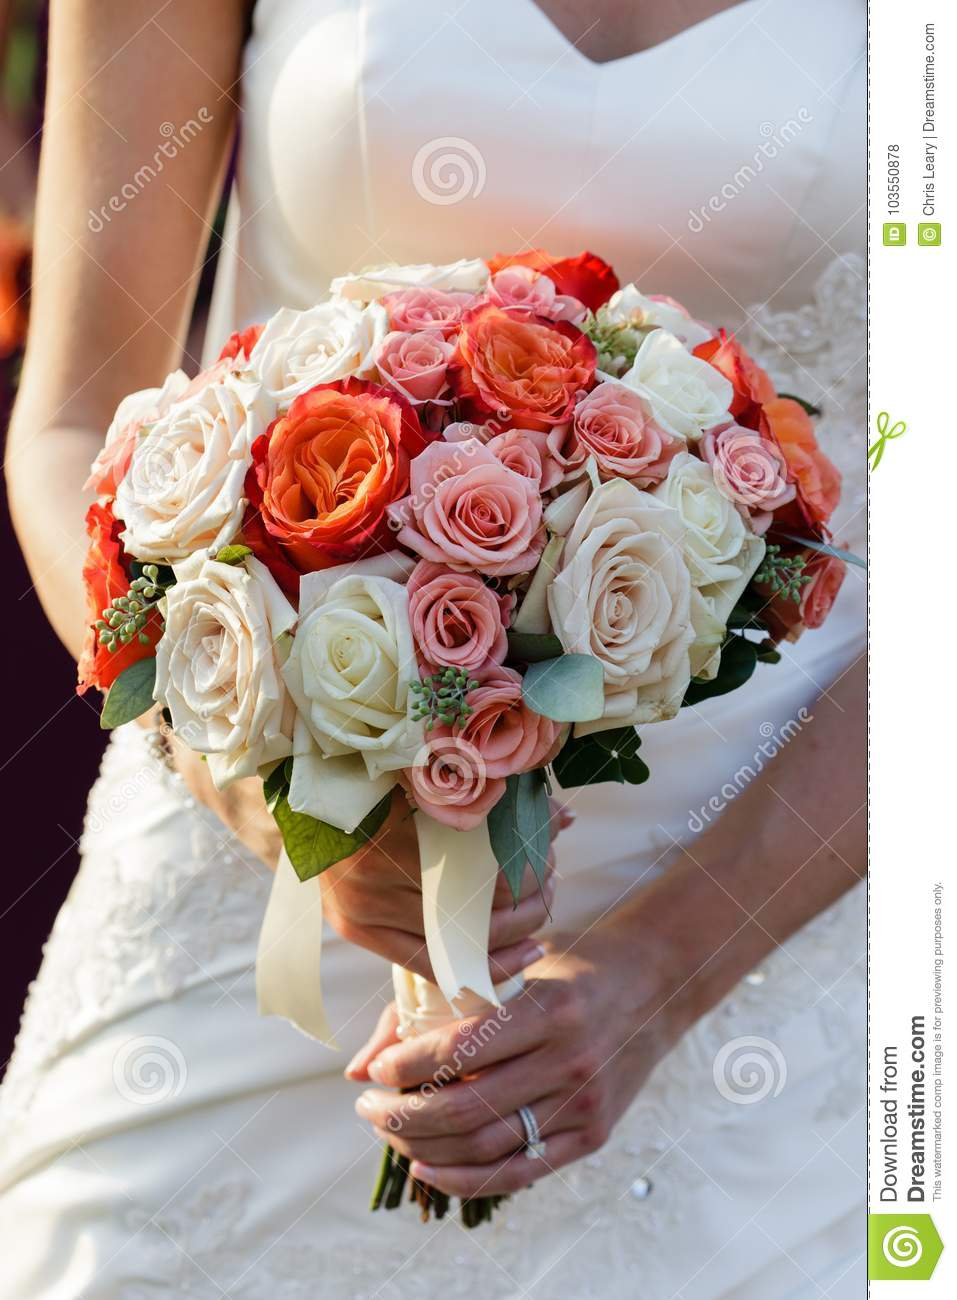 Bride Bridesmaid Holding Wedding Flower Bouquet Stock Photo - Image ...